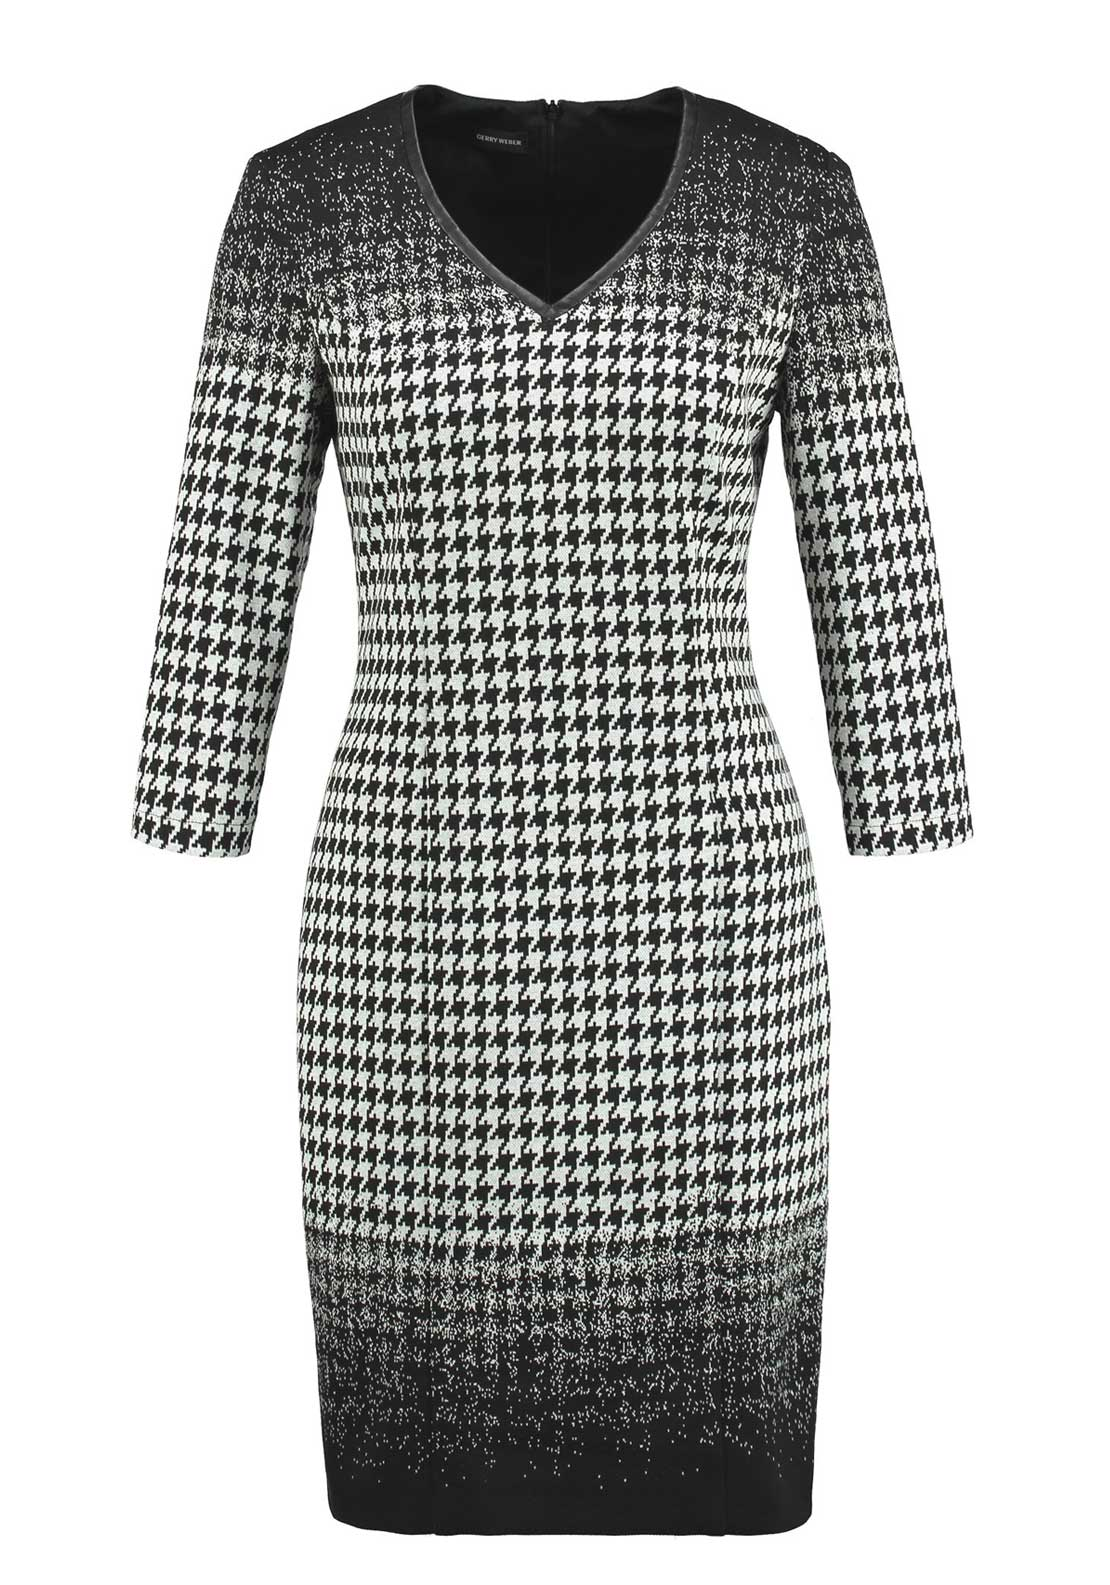 Gerry Weber Houndstooth Print Cotton Blend Shift Dress, Black and White